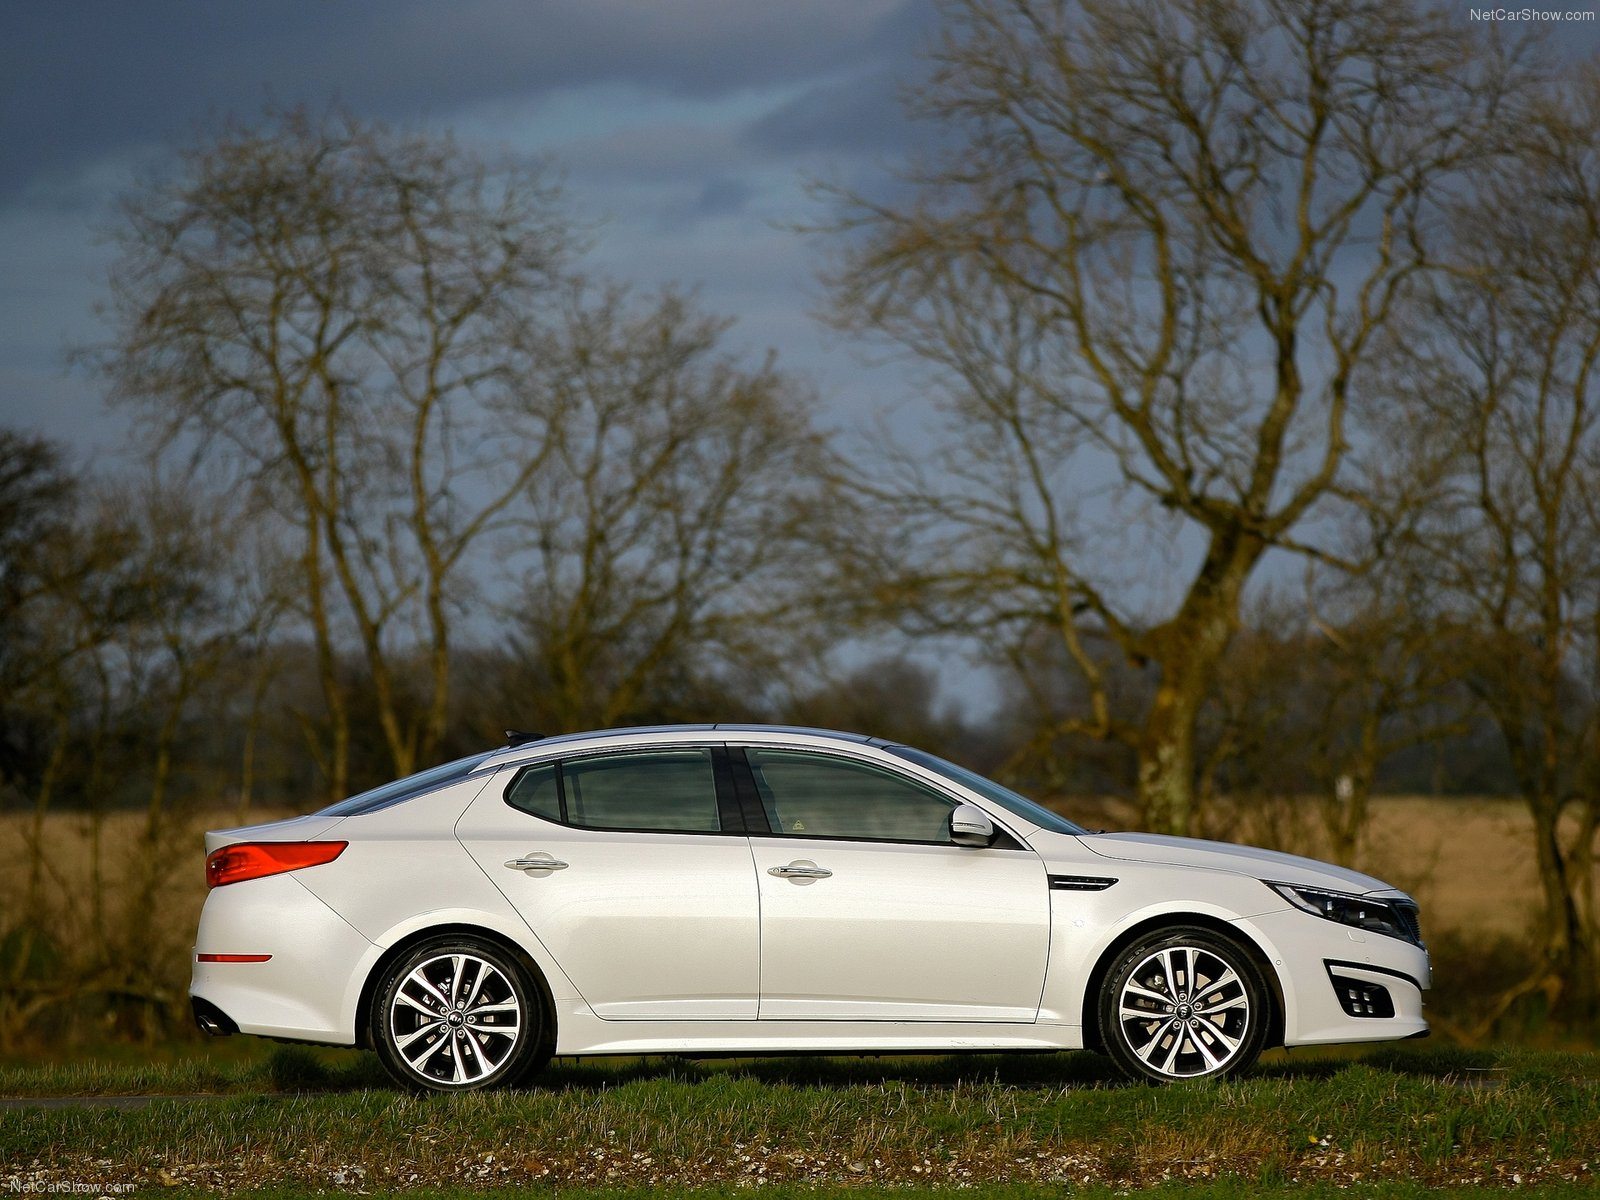 Kia Optima EU-Version photo 115210